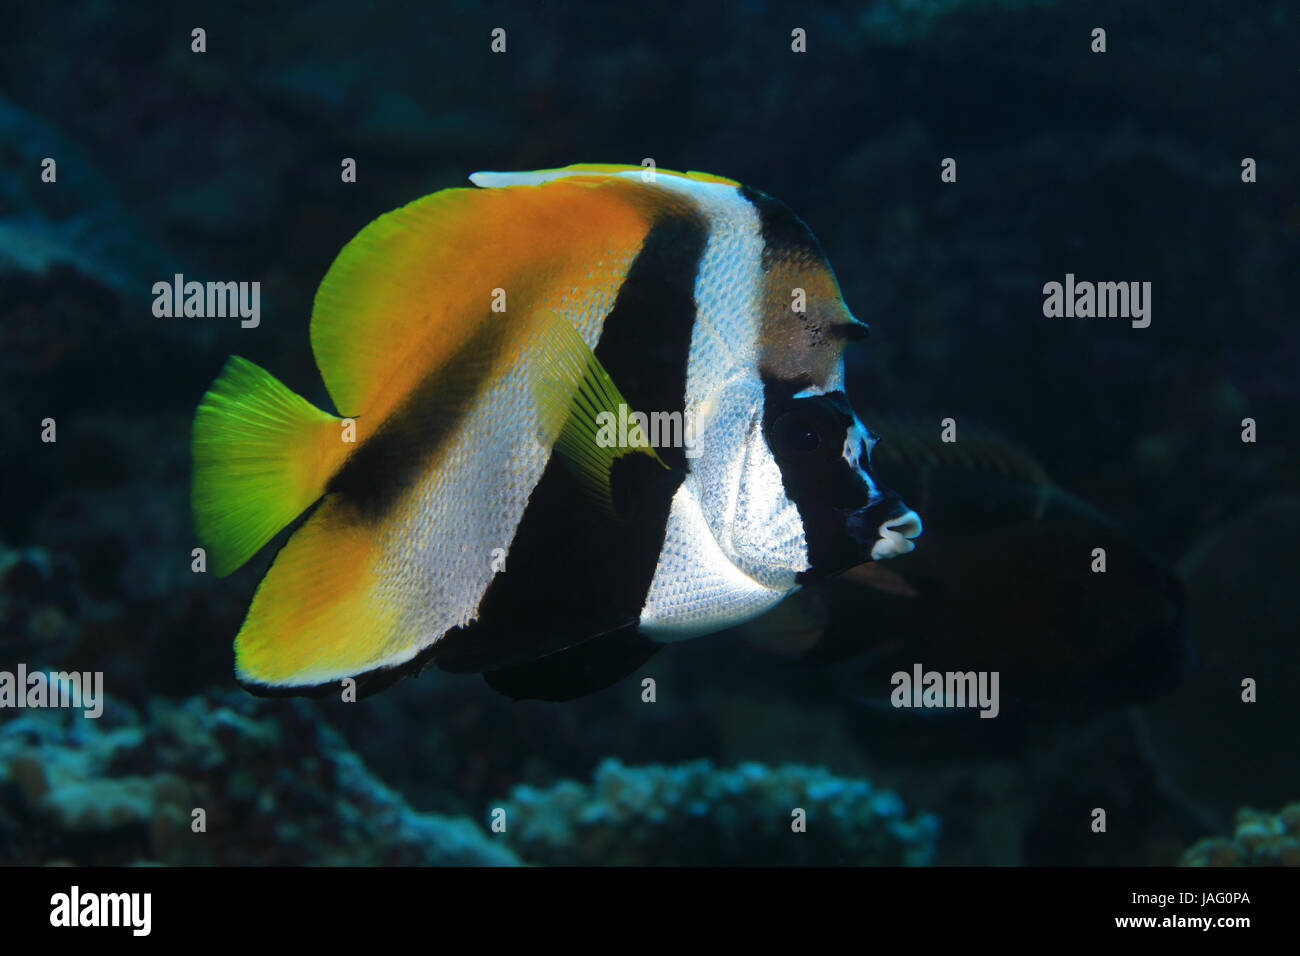 Masked bannerfish (Heniochus monoceros) underwater in the tropical waters of the indian ocean - Stock Image